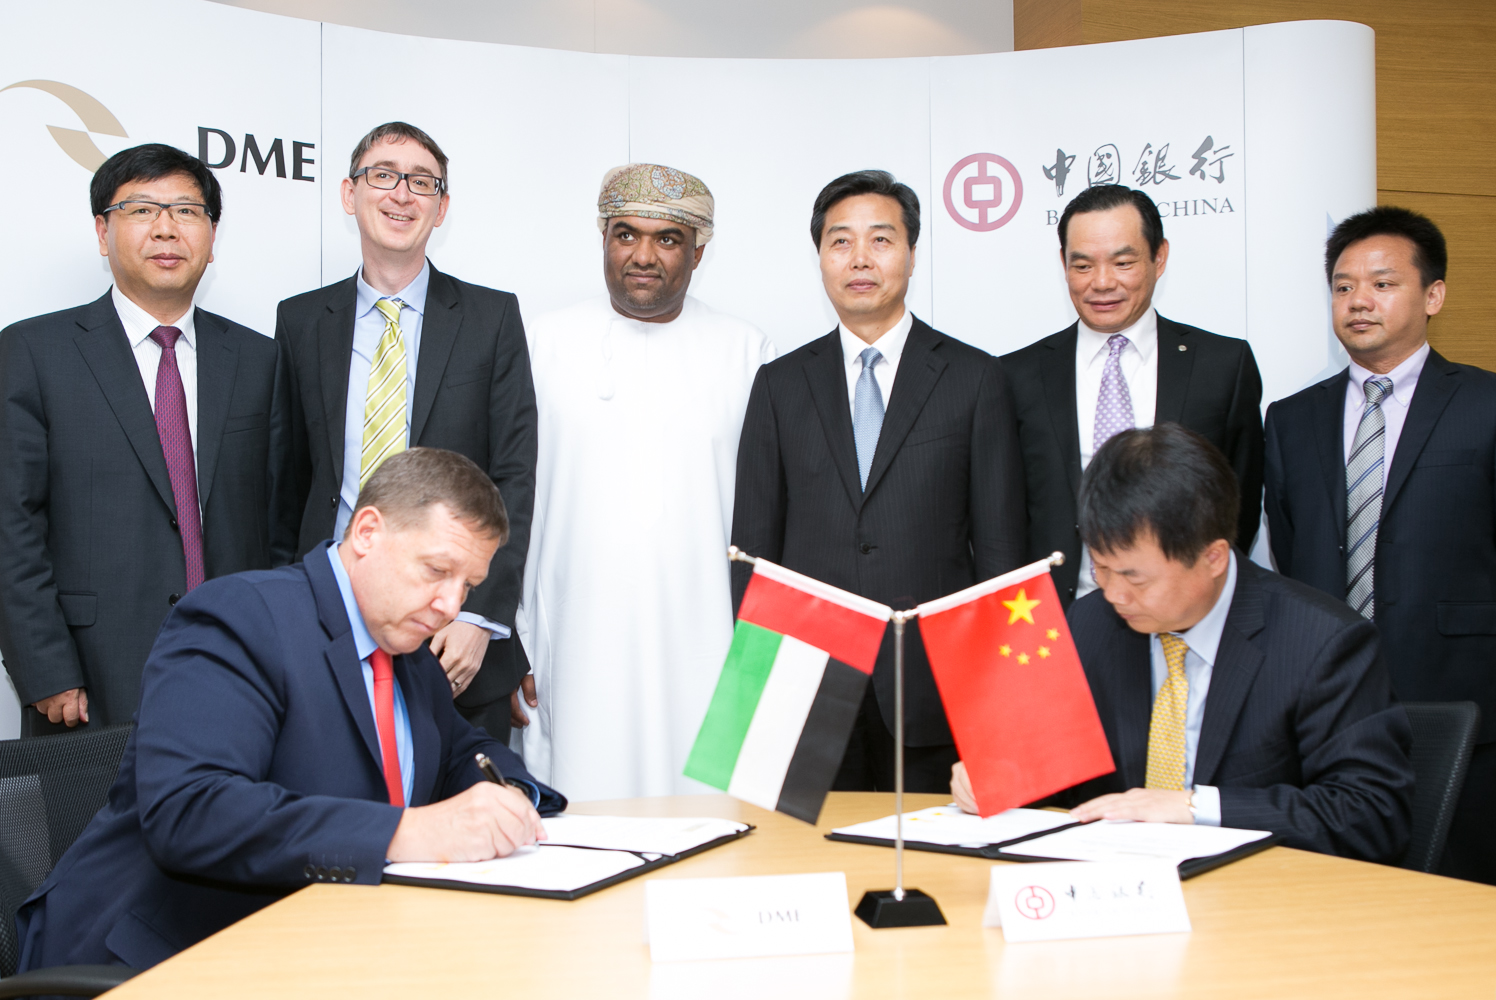 Bank of China and DME announce partnership agreement